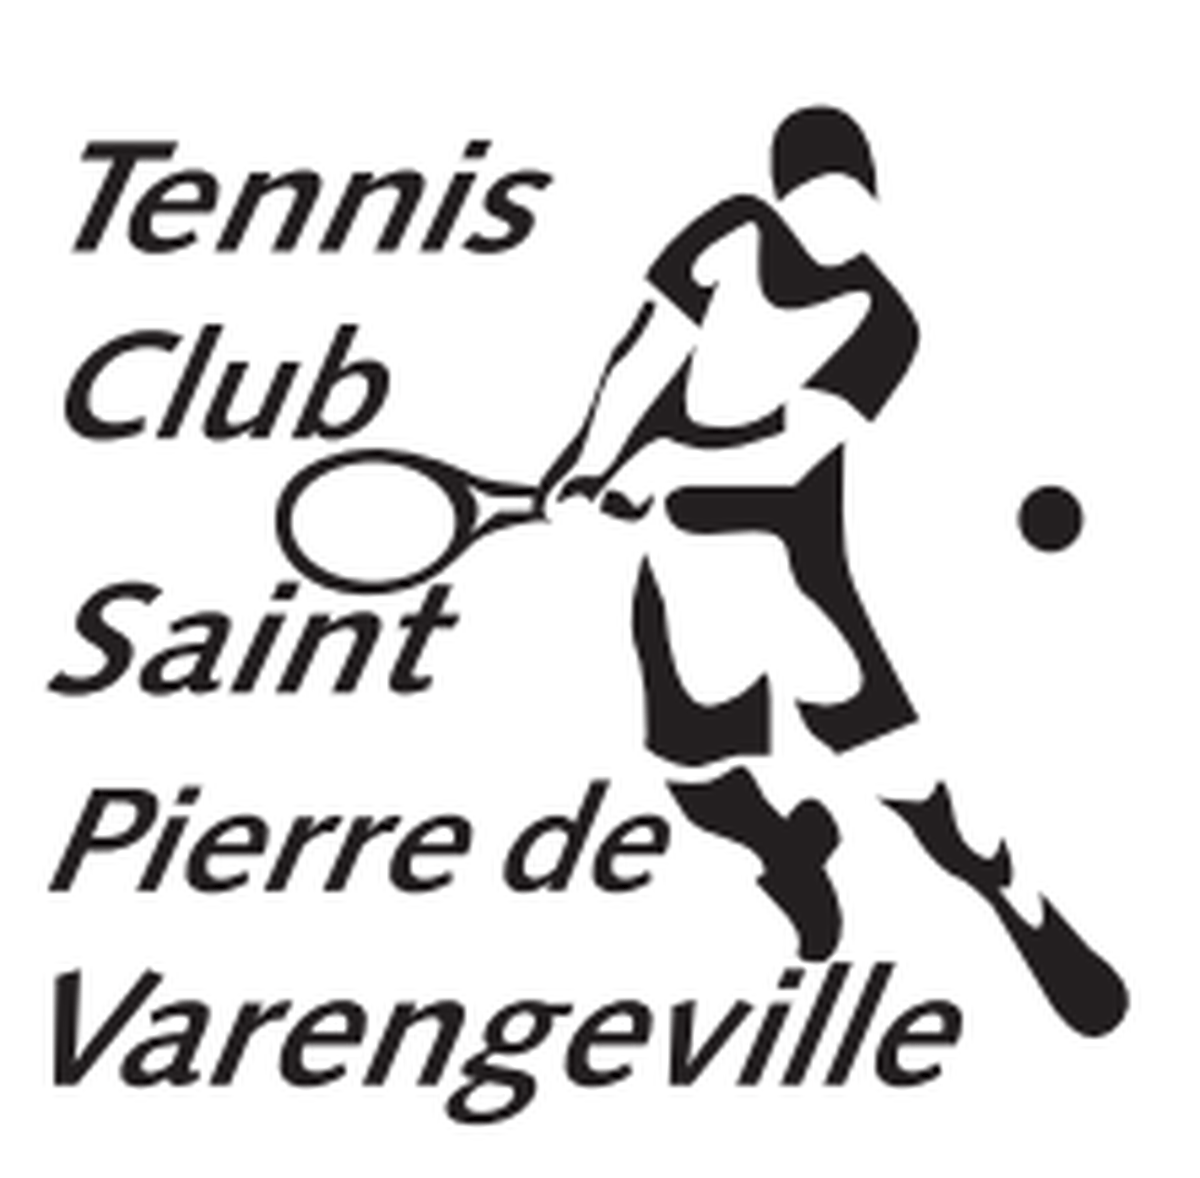 Tennis Club Saint Pierre de Varengeville